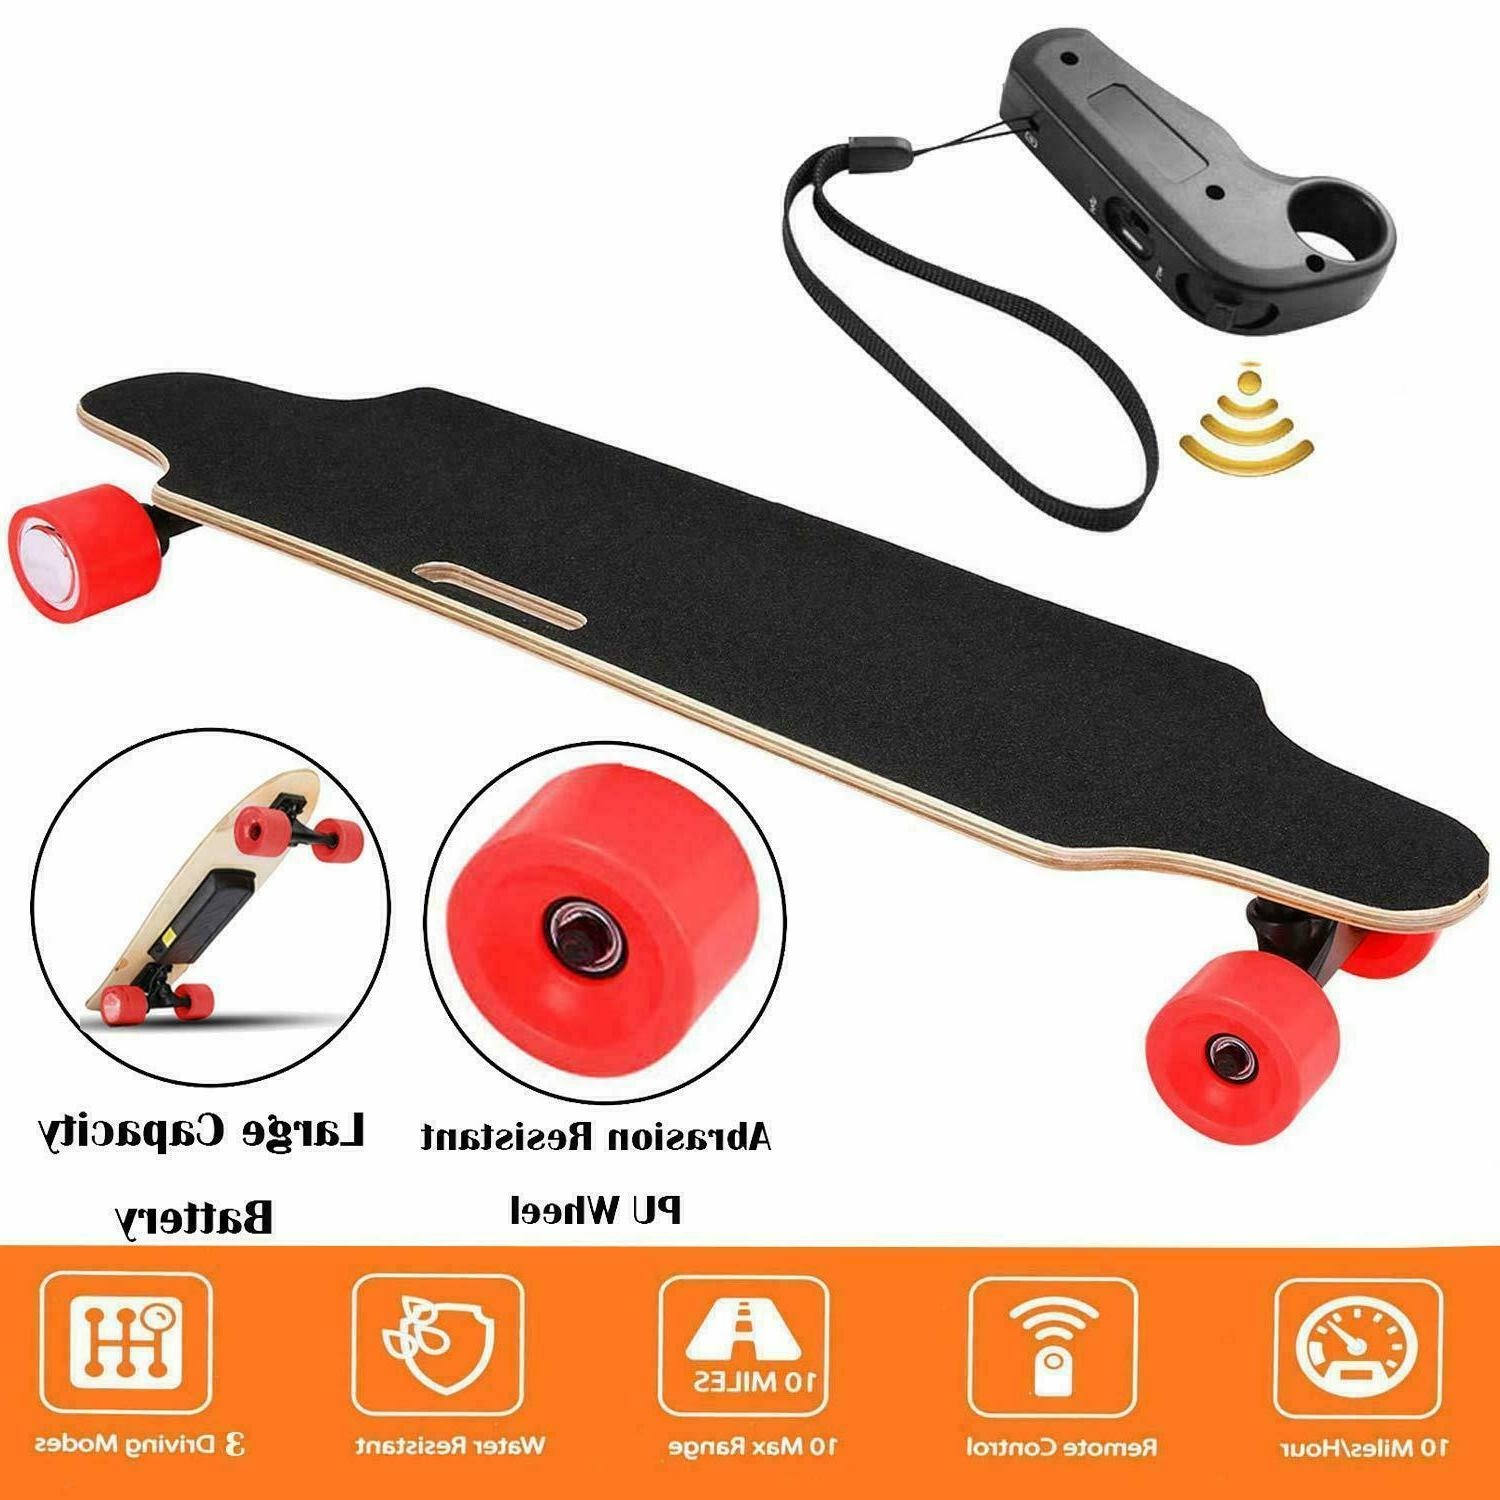 Aceshin Electric Skateboard Cruiser Maple Long Board with Wi